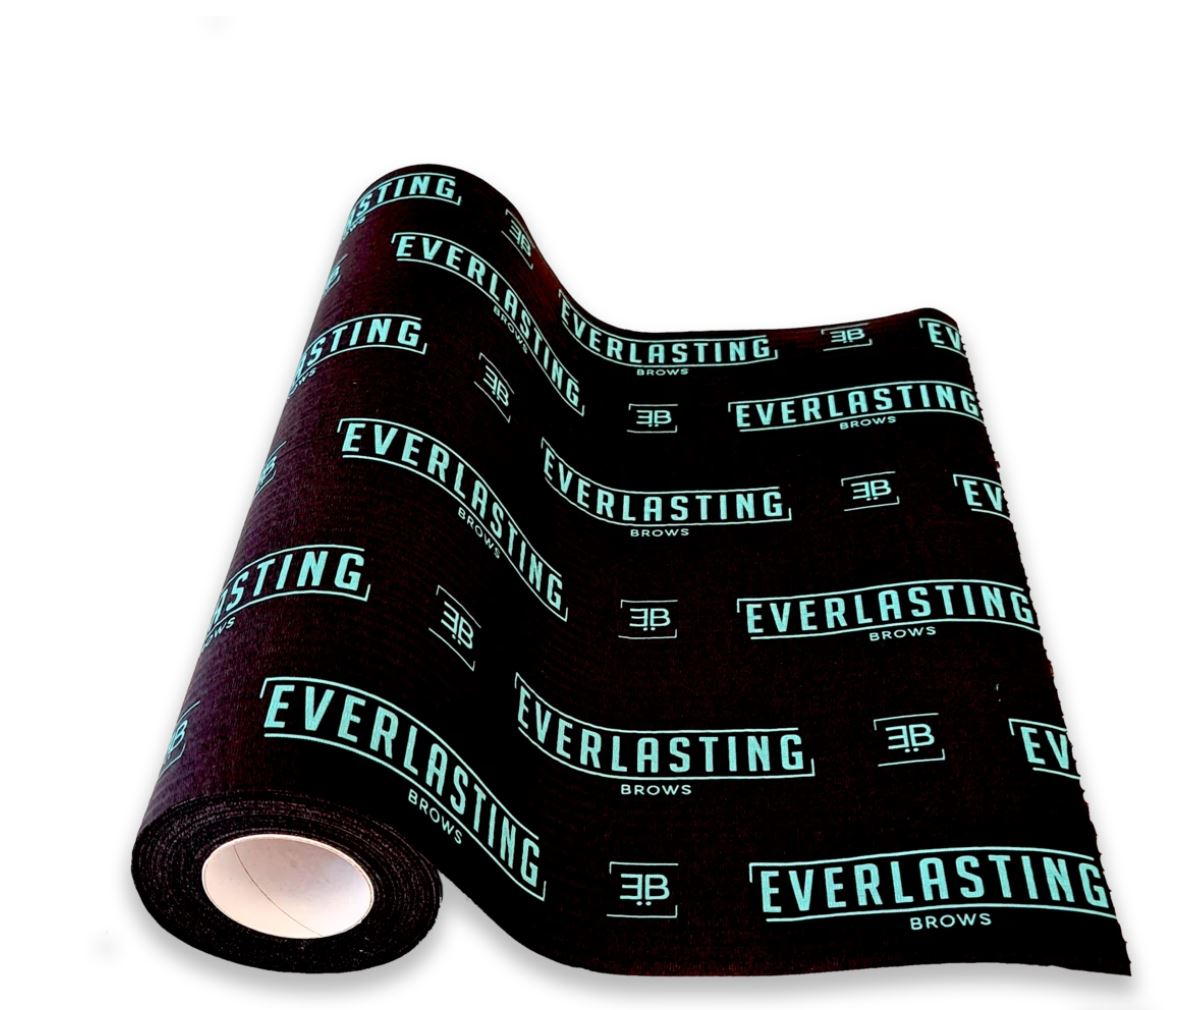 Everlasting branded fluid proof trolley covers x 50 - Lash Kings